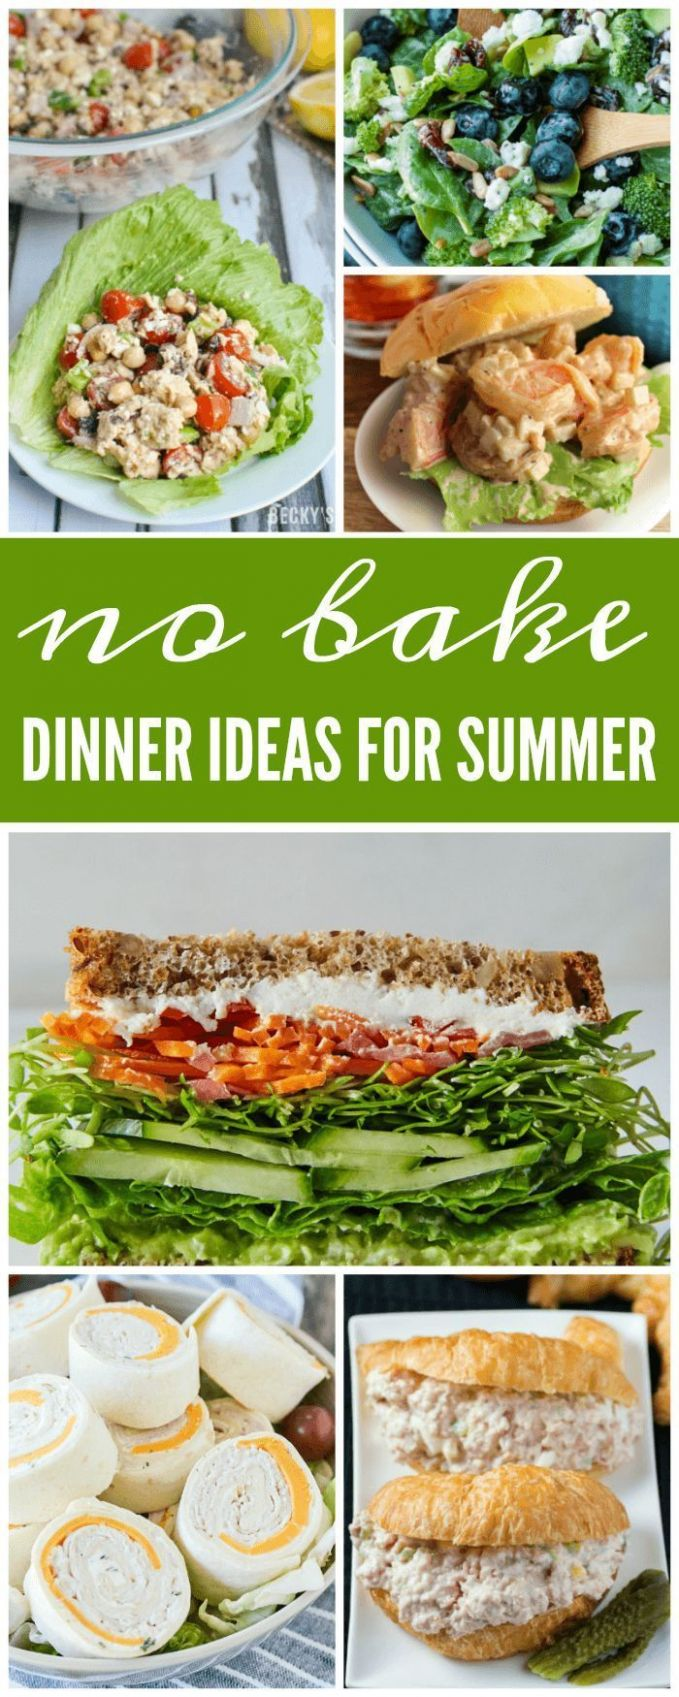 No Bake Dinner Ideas for Summer perfect backyard barbecue recipes ..